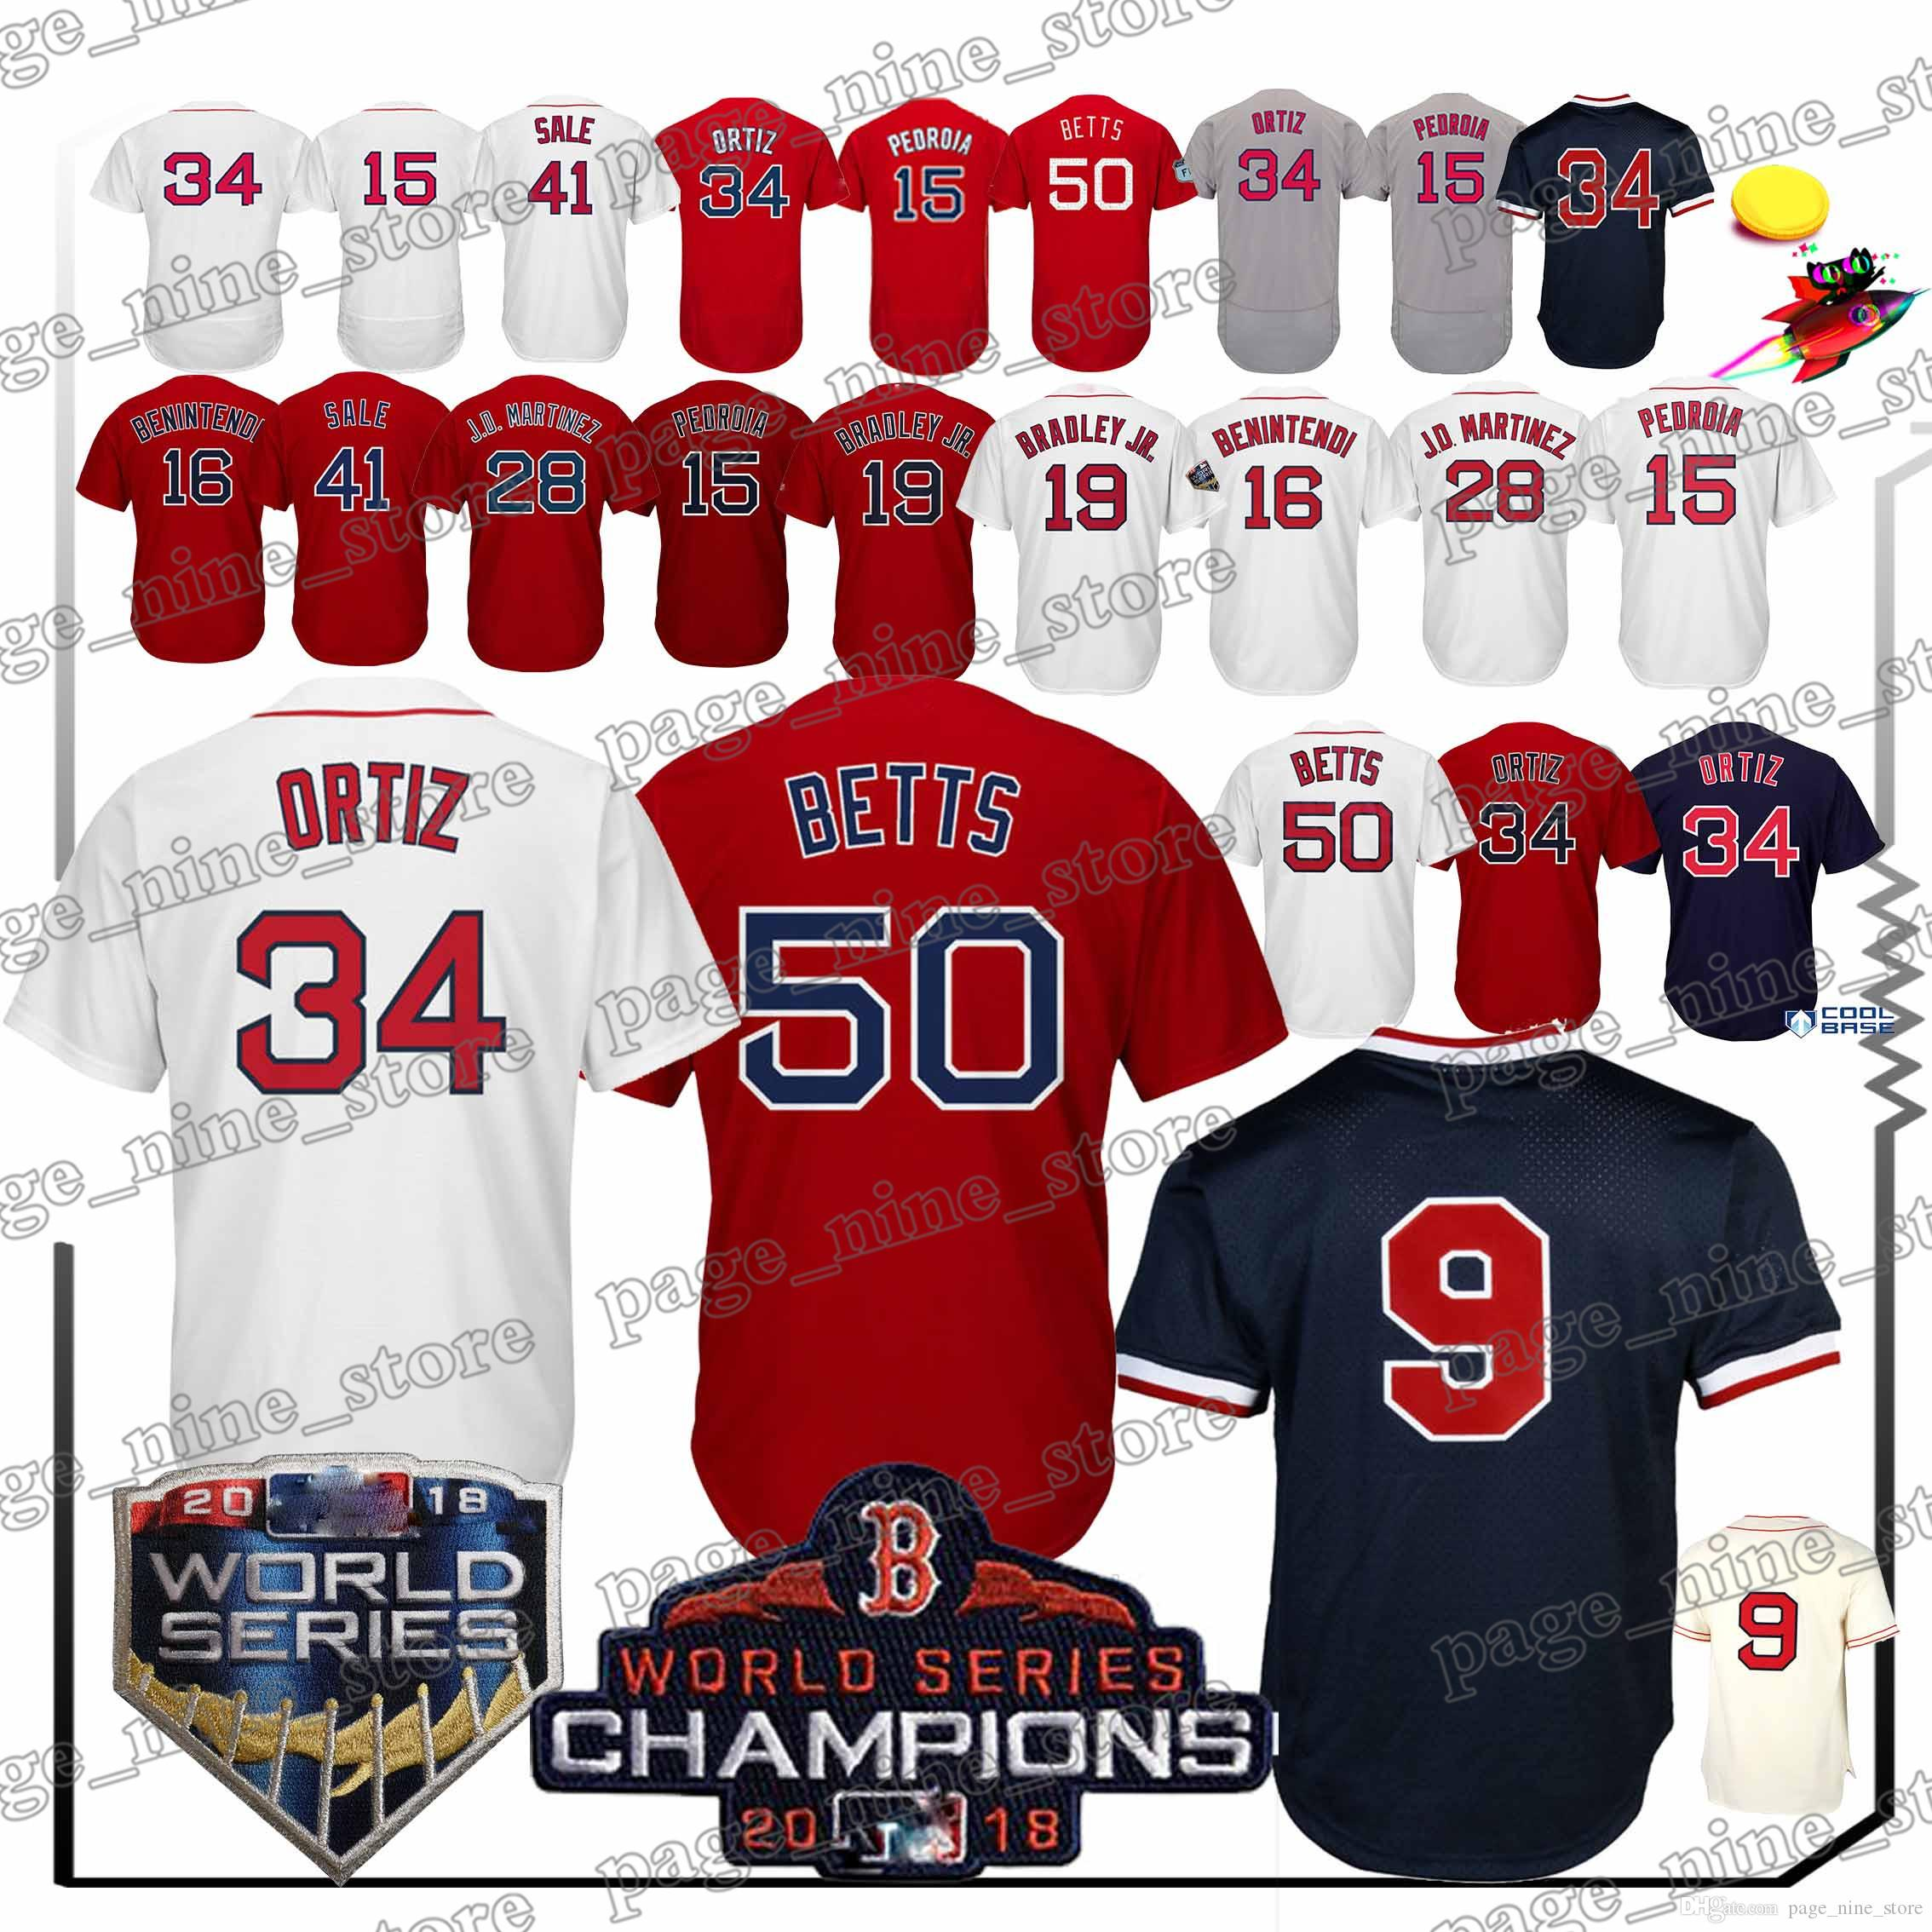 2019 Boston Red Sox Jerseys 50 Mookie Betts 34 David Ortiz Hot Sale High  Quality 2018 New Jersey Sportswear From Page nine store 730d912f920